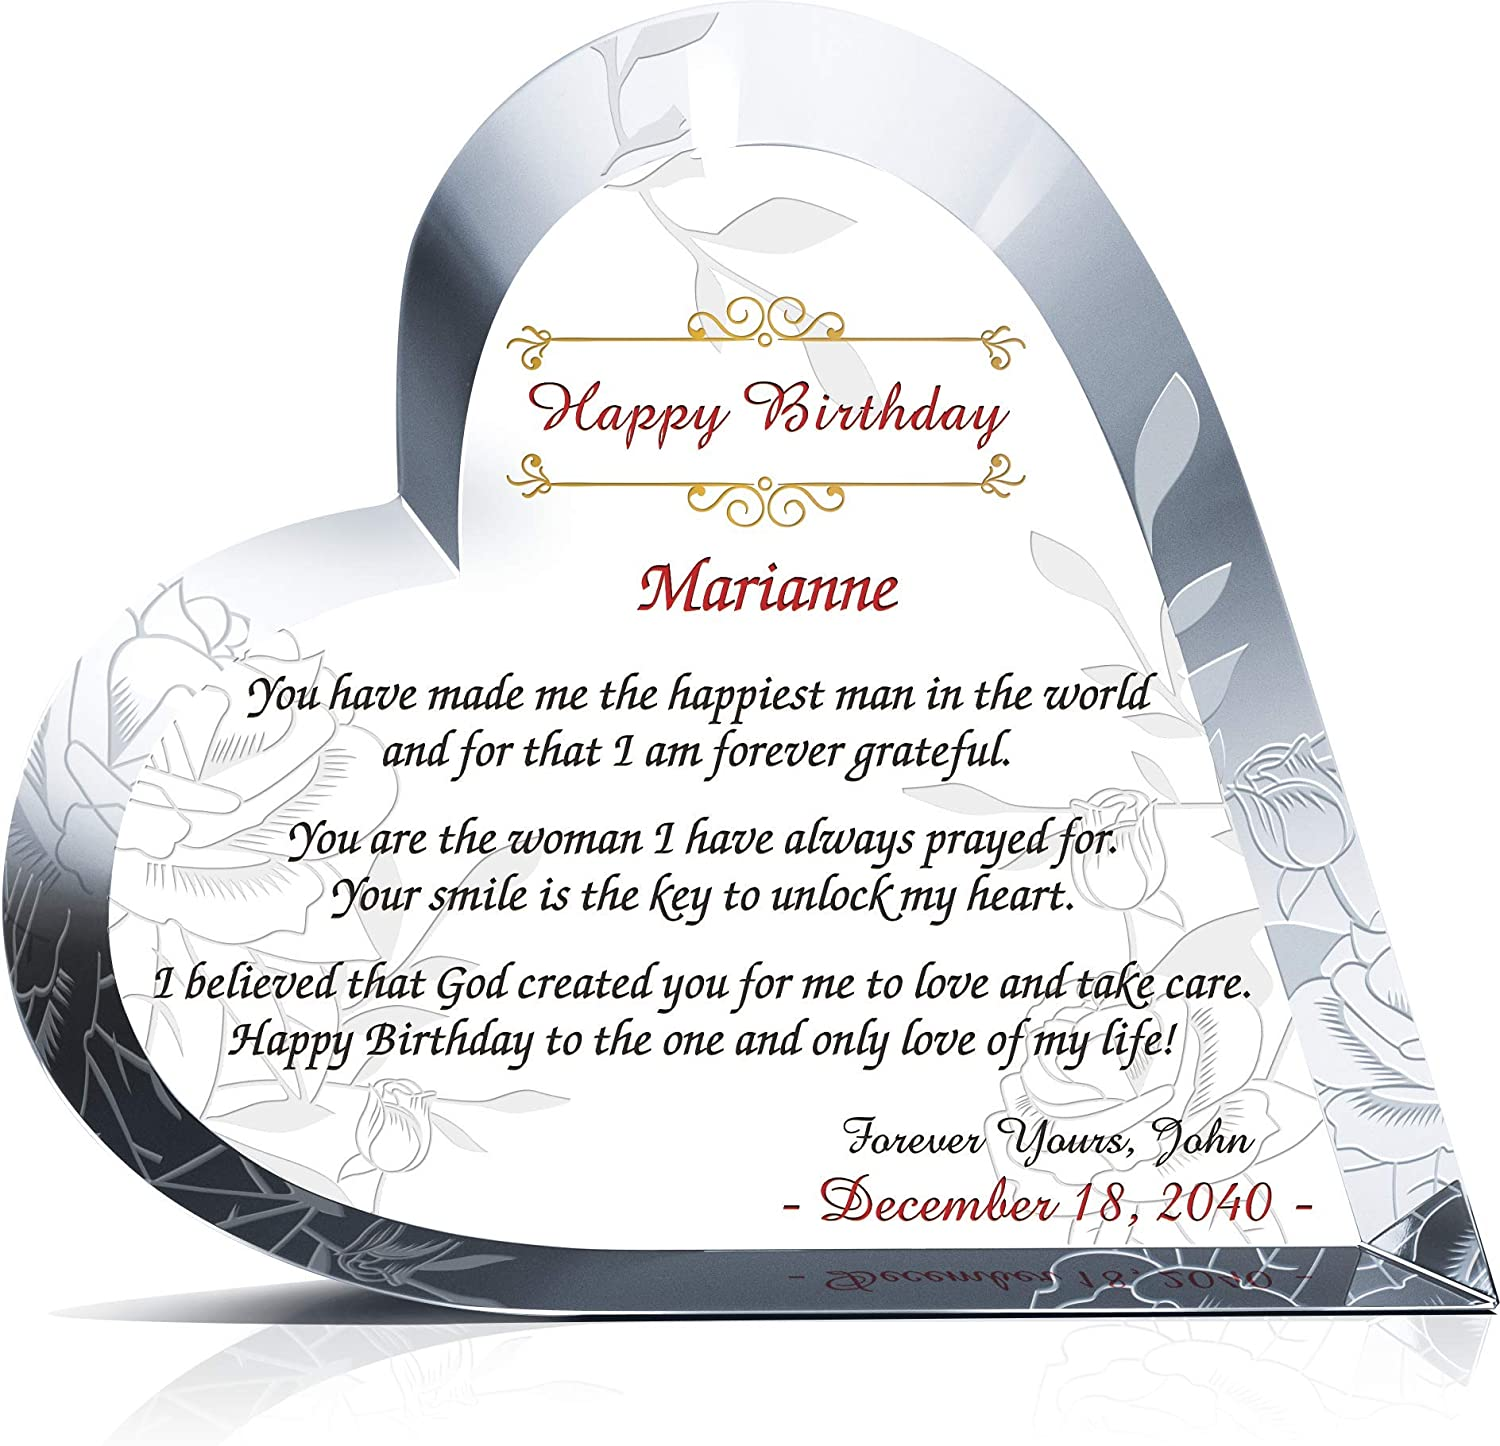 Personalized Crystal Heart Birthday Gift for Wife or Girlfriend, Customized with Wife or Girlfriend's Name and Date, Unique Gift for Her on Birthday, Anniversary, Mother's Day, Christmas (L - 7.5